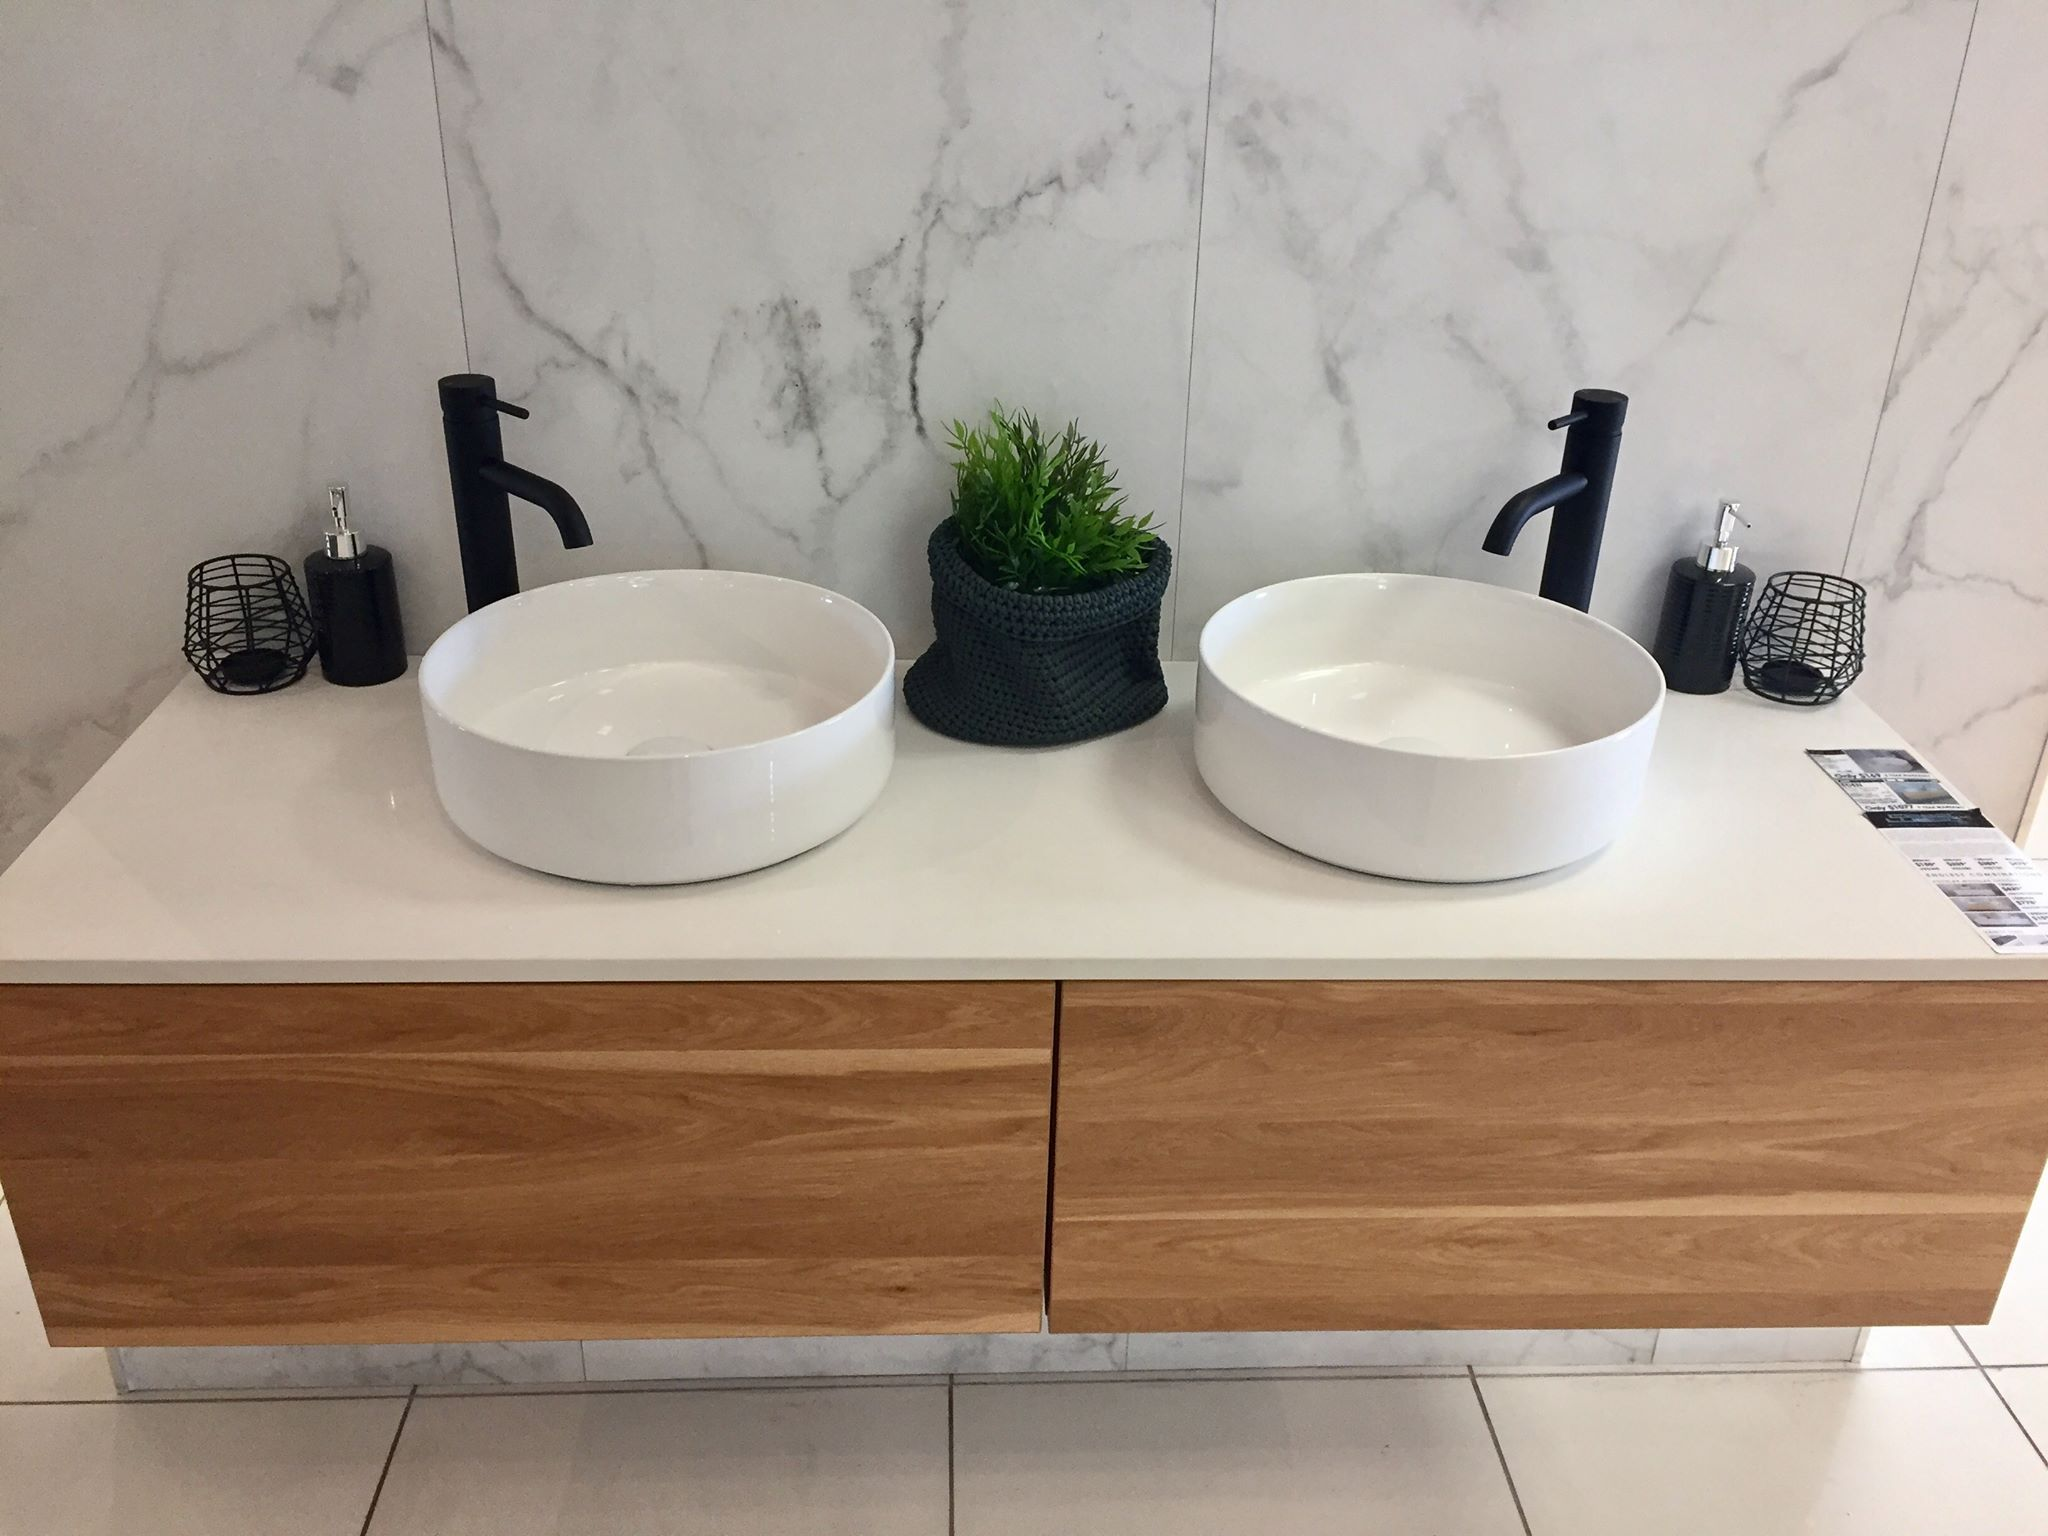 Looking For A Timber Vanity? Look No Further Than Our Eden Modular Vanity  Cabinets. Single Or Double Wall Mount Drawers. Here You See It With Our  Snow White ...